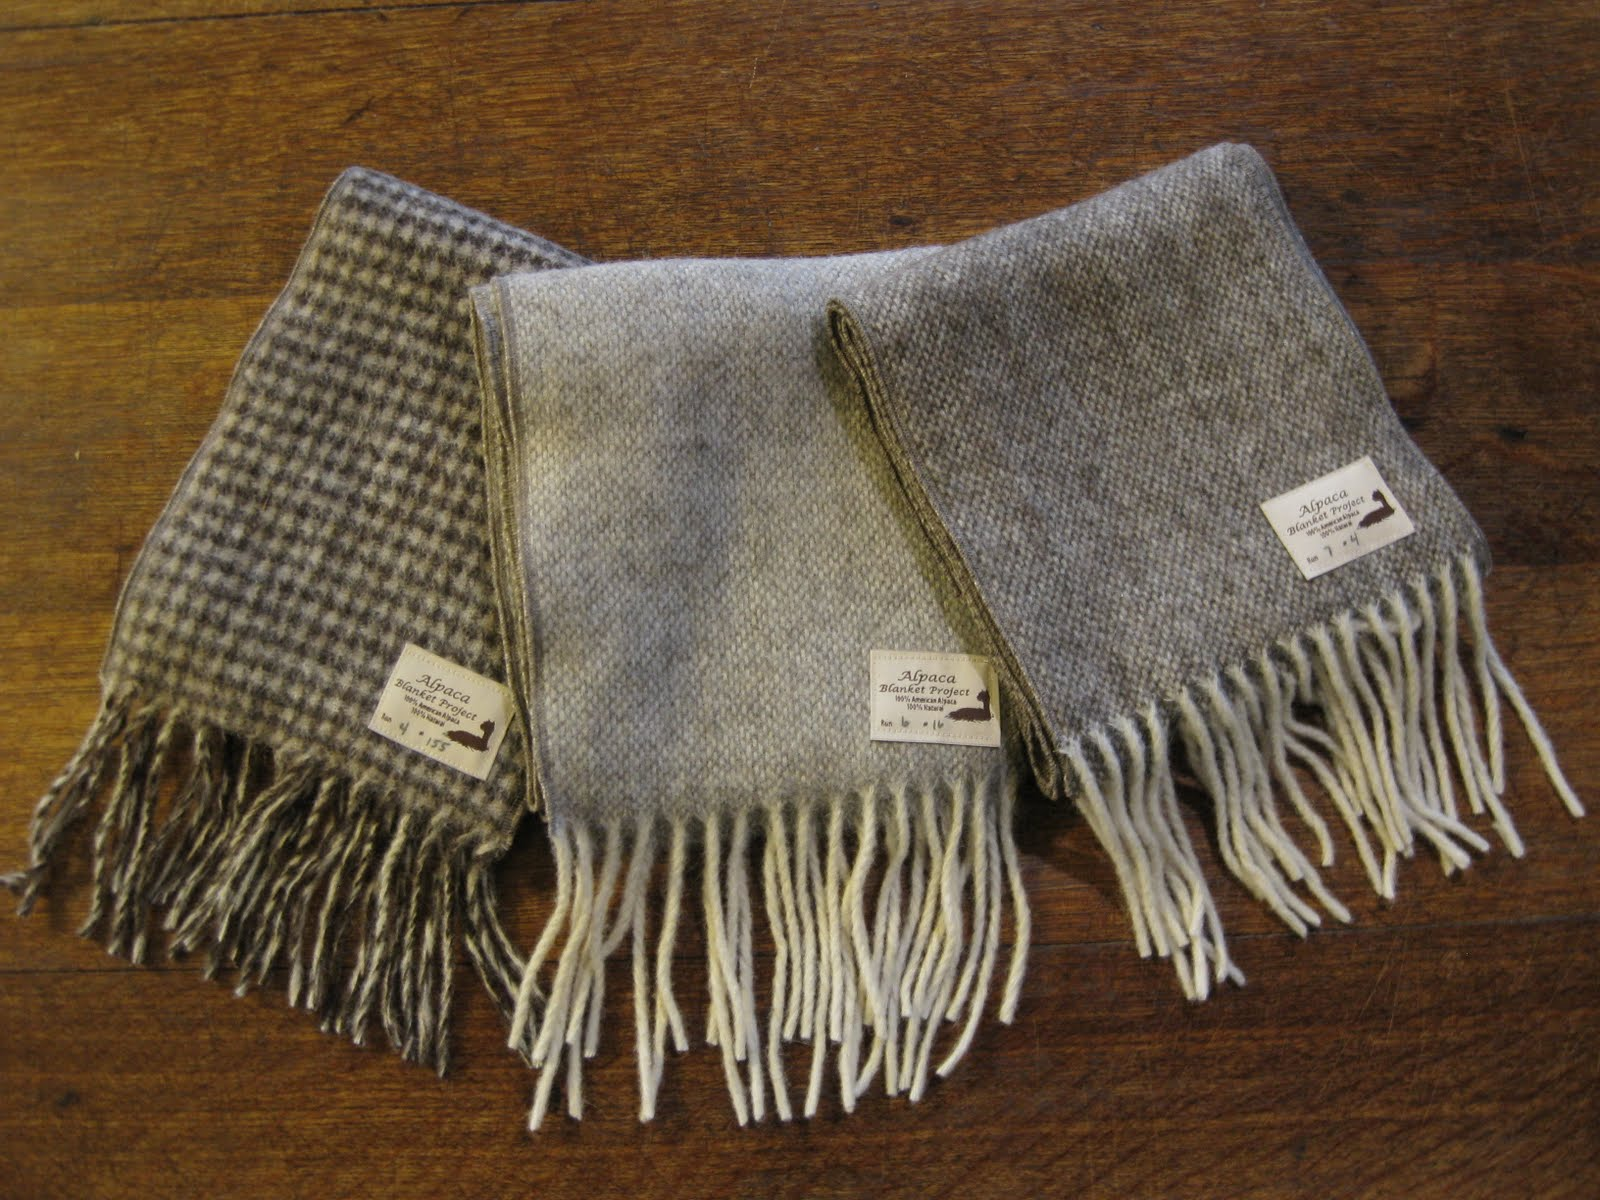 alpaca blanket project Bestselling authentic wholesale alpaca products hats, gloves, scarves, apparel and blankets there are many fake and inauthentic alpaca products on the internet and.